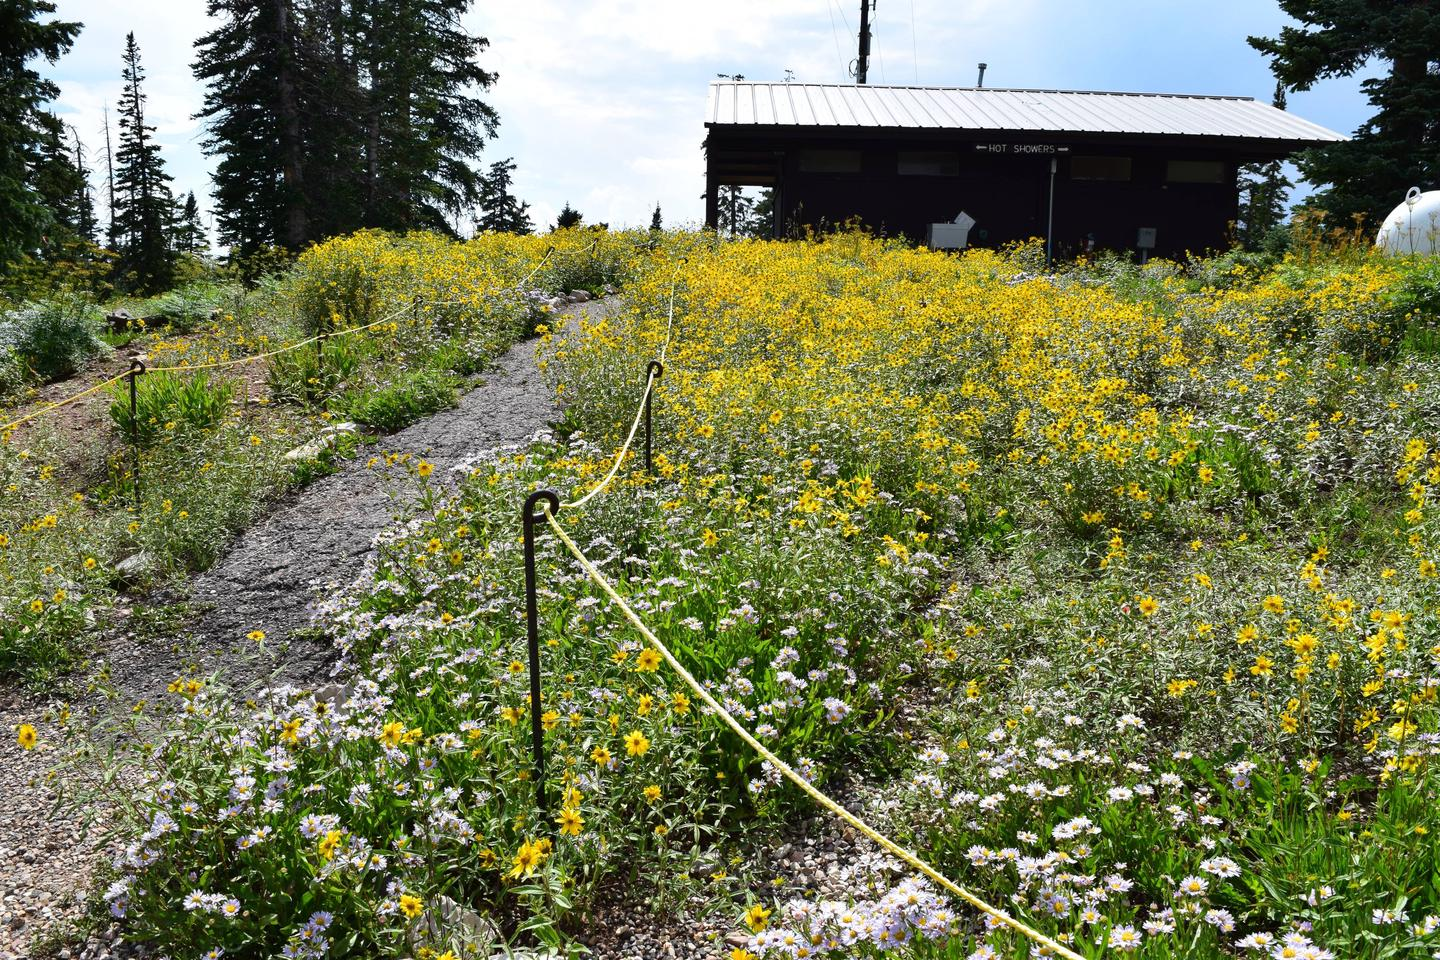 Path towards restroom building with yellow wildflowers. The path the the restroom and showers has beautiful wildflowers during the summer months.